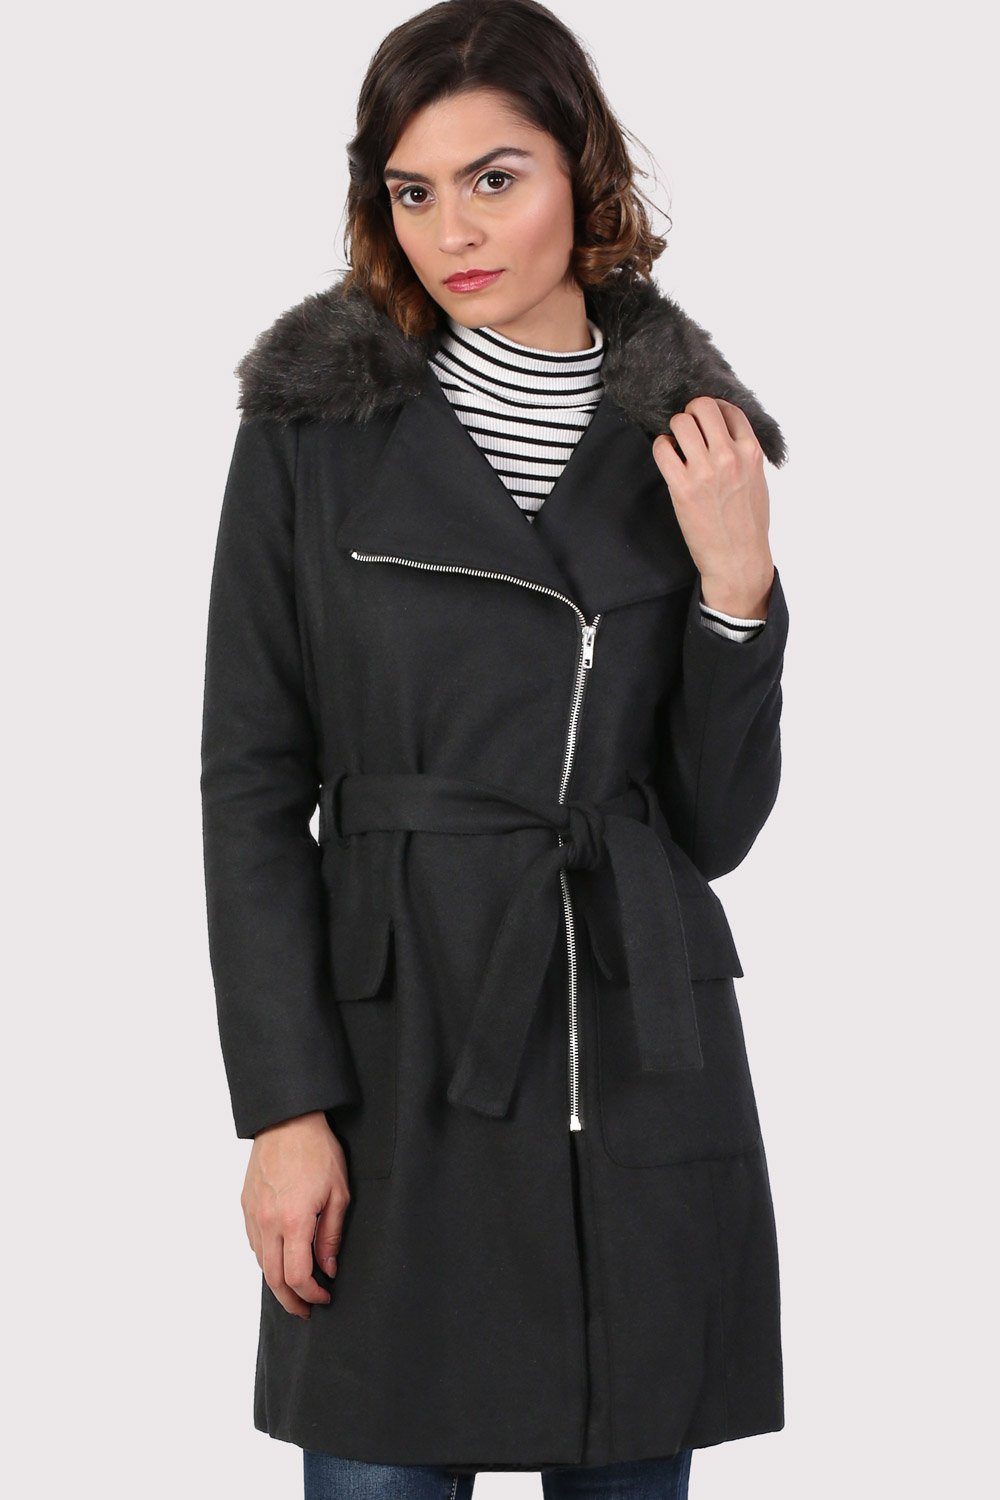 Faux Fur Collar Wool Coat in Black 1